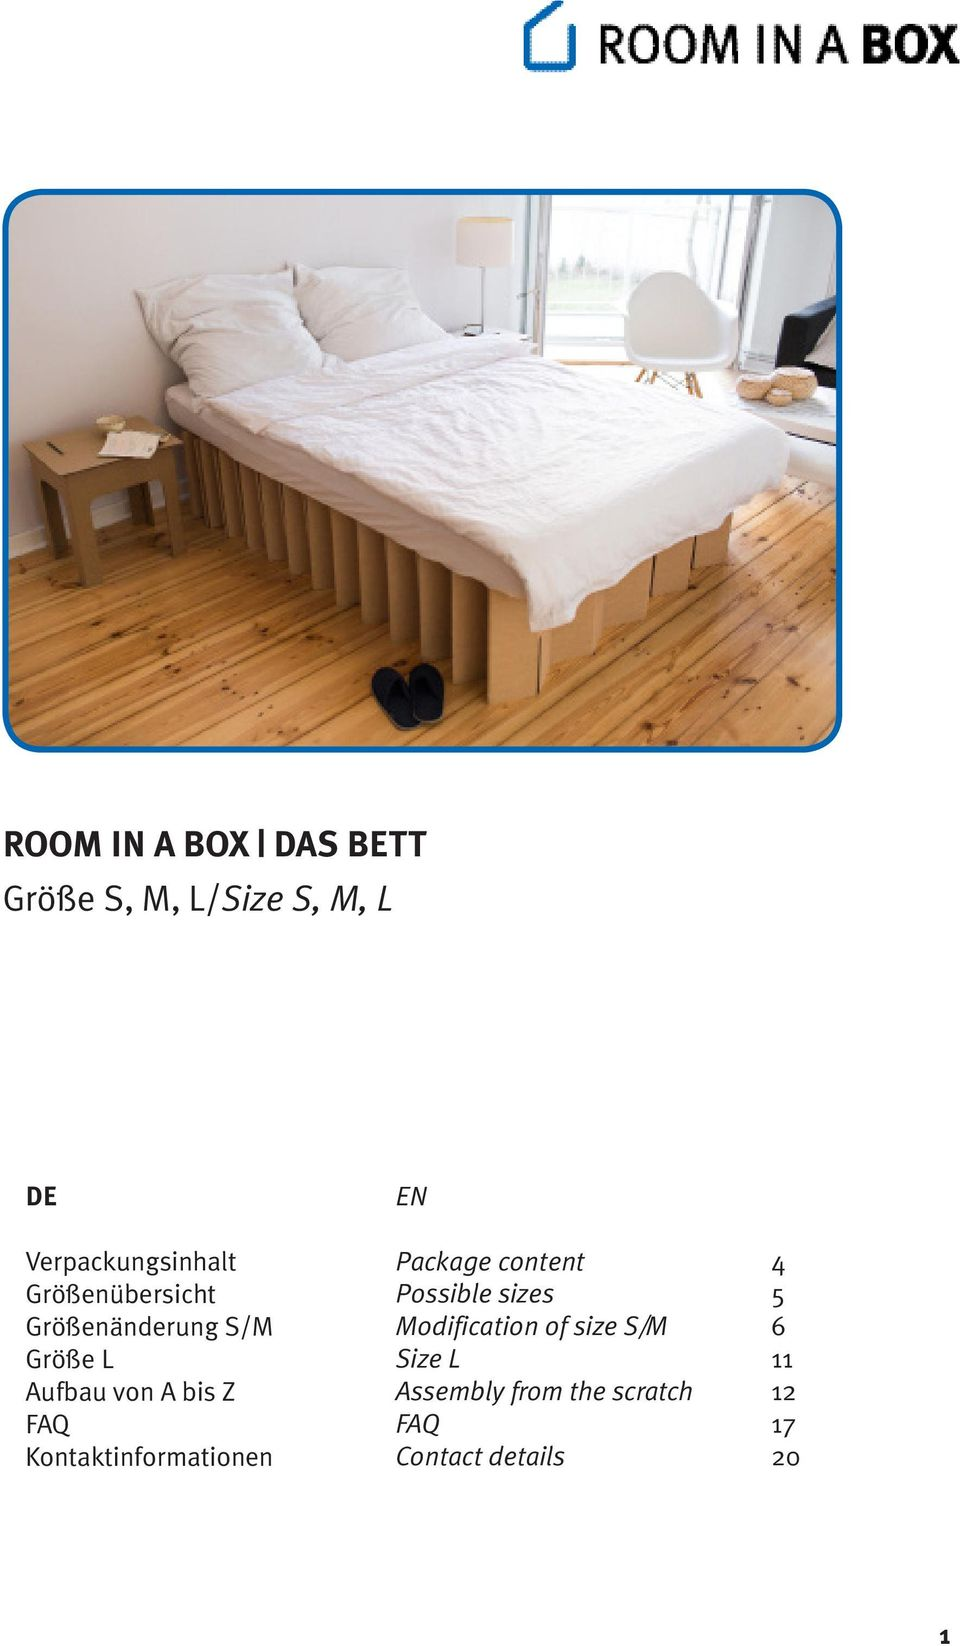 Wunderbar Bett Größe Das Beste Von Rmationen En Package Content Possible Sizes Modification